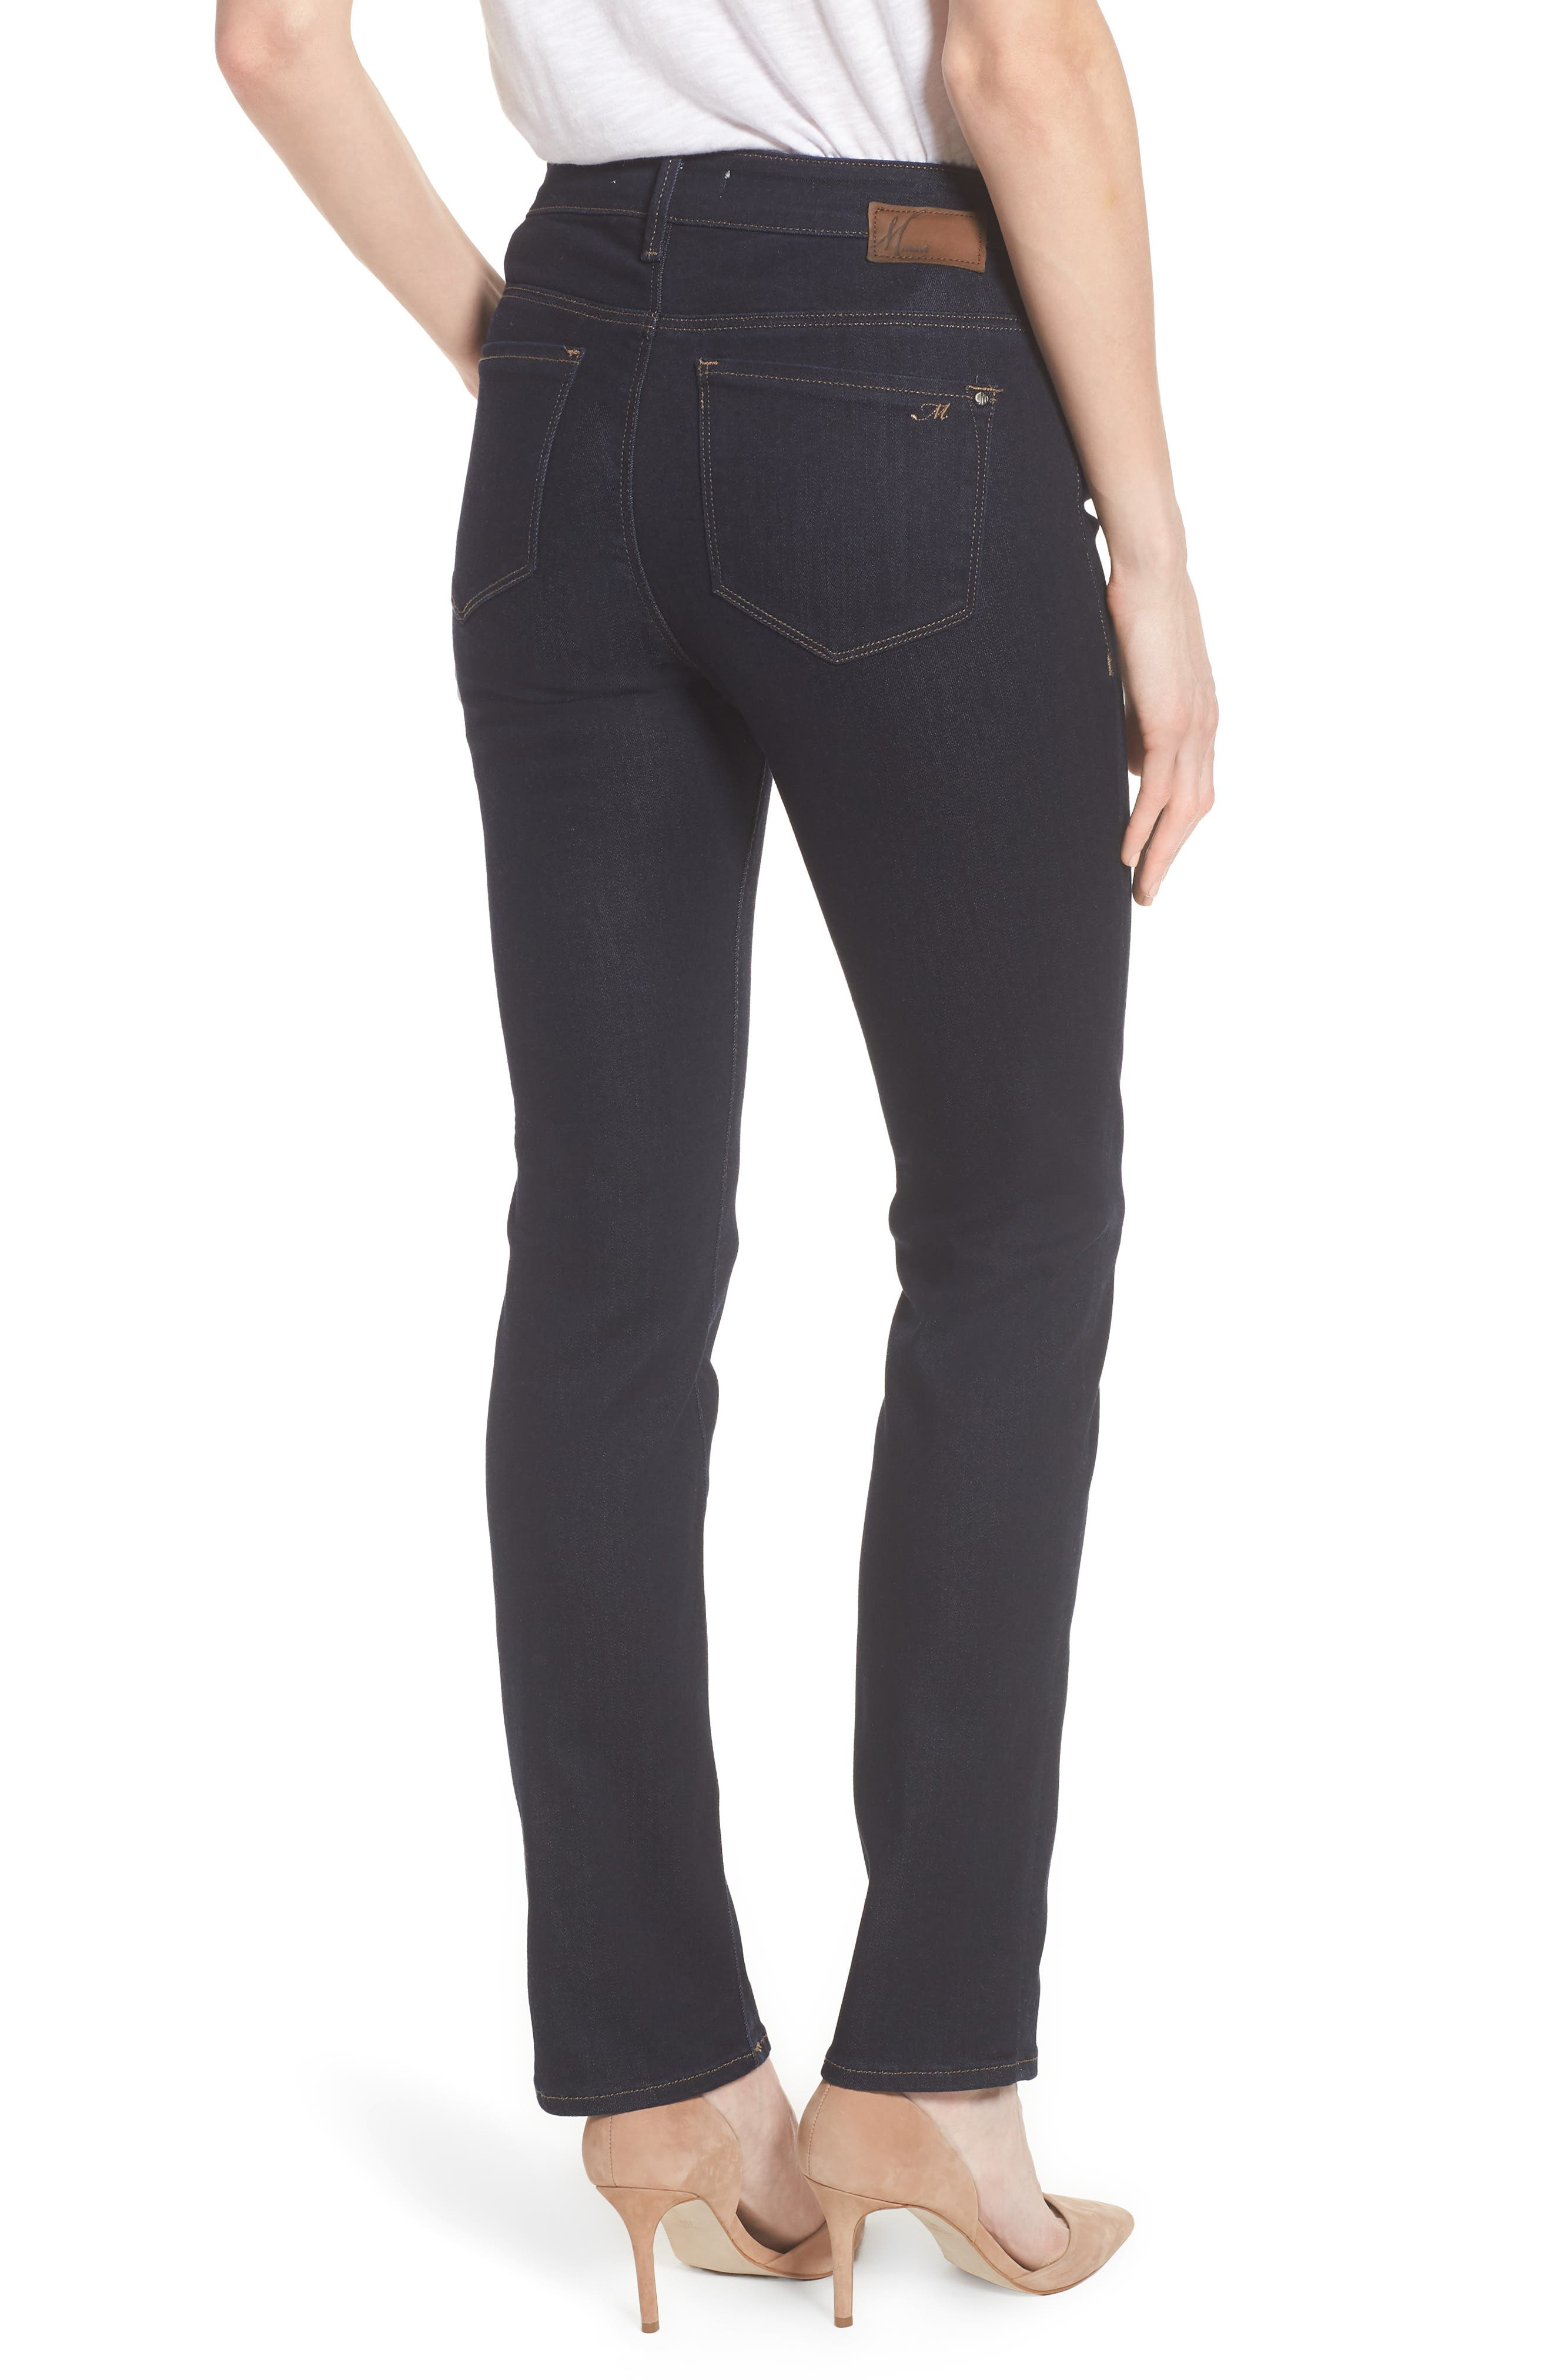 Kendra Supersoft Straight Leg Jeans,                             Alternate thumbnail 2, color,                             Rinse Super Soft